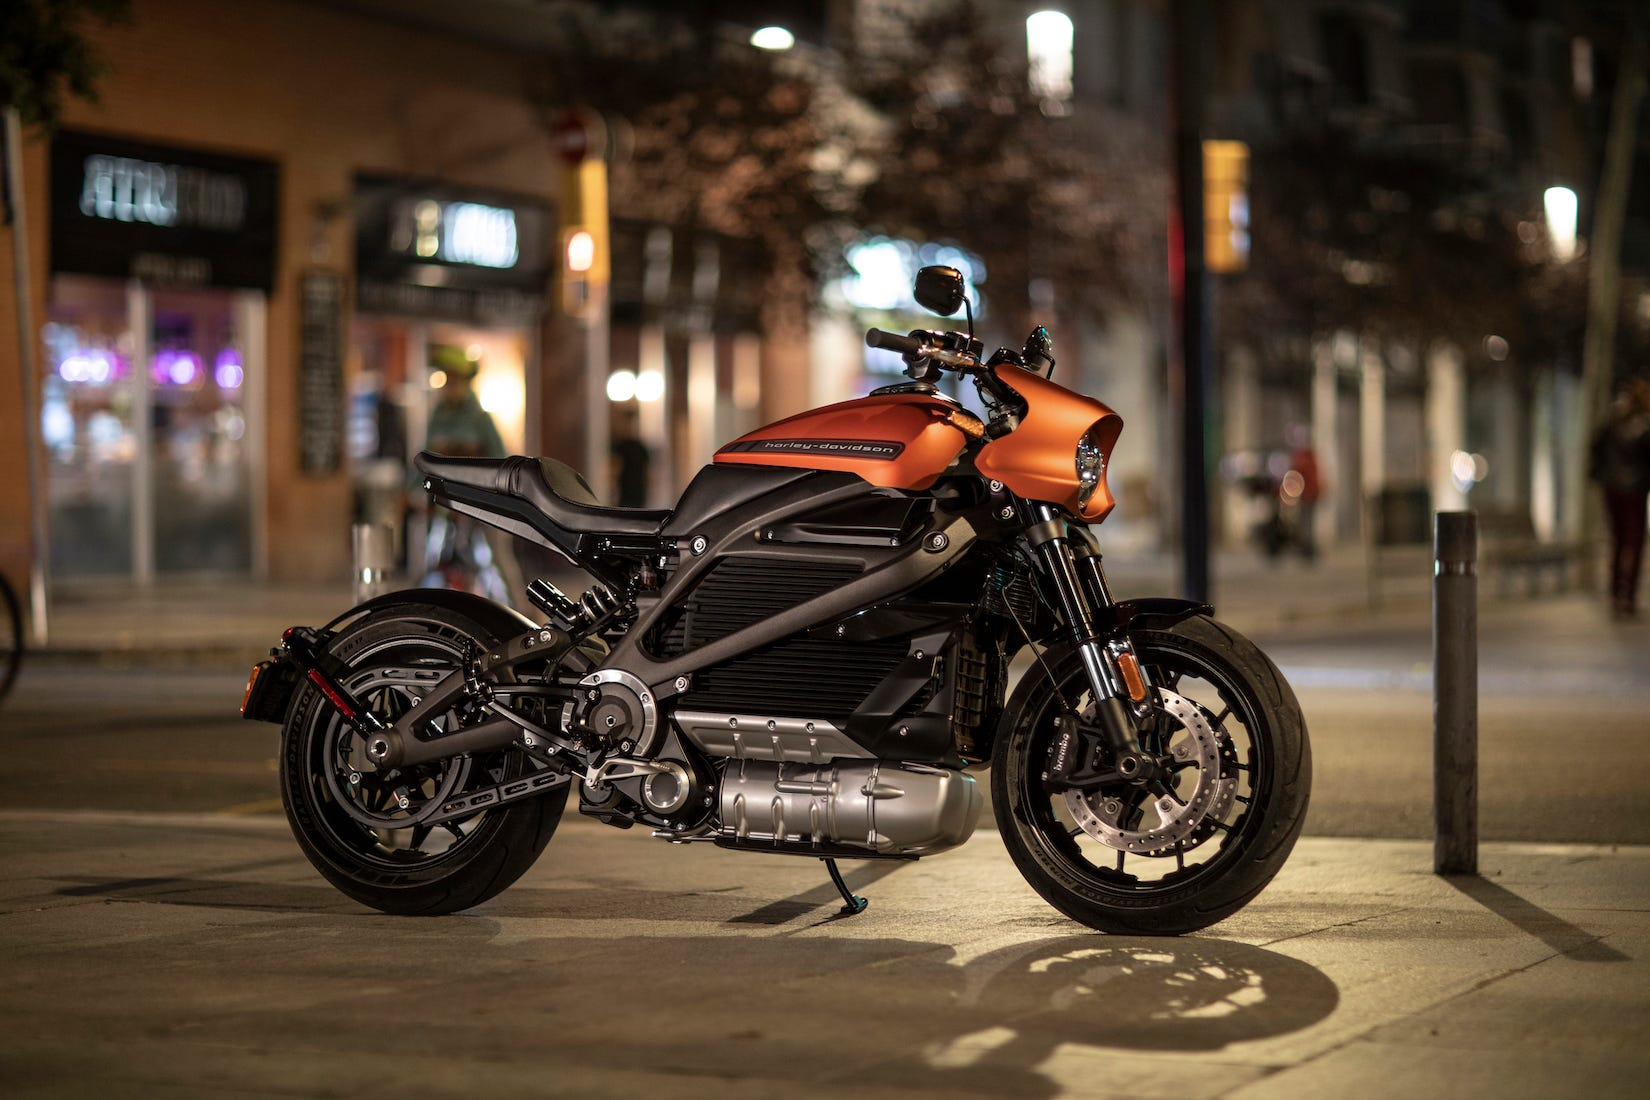 Harley-Davidson halts production of LiveWire electric motorcycles after problem uncovered